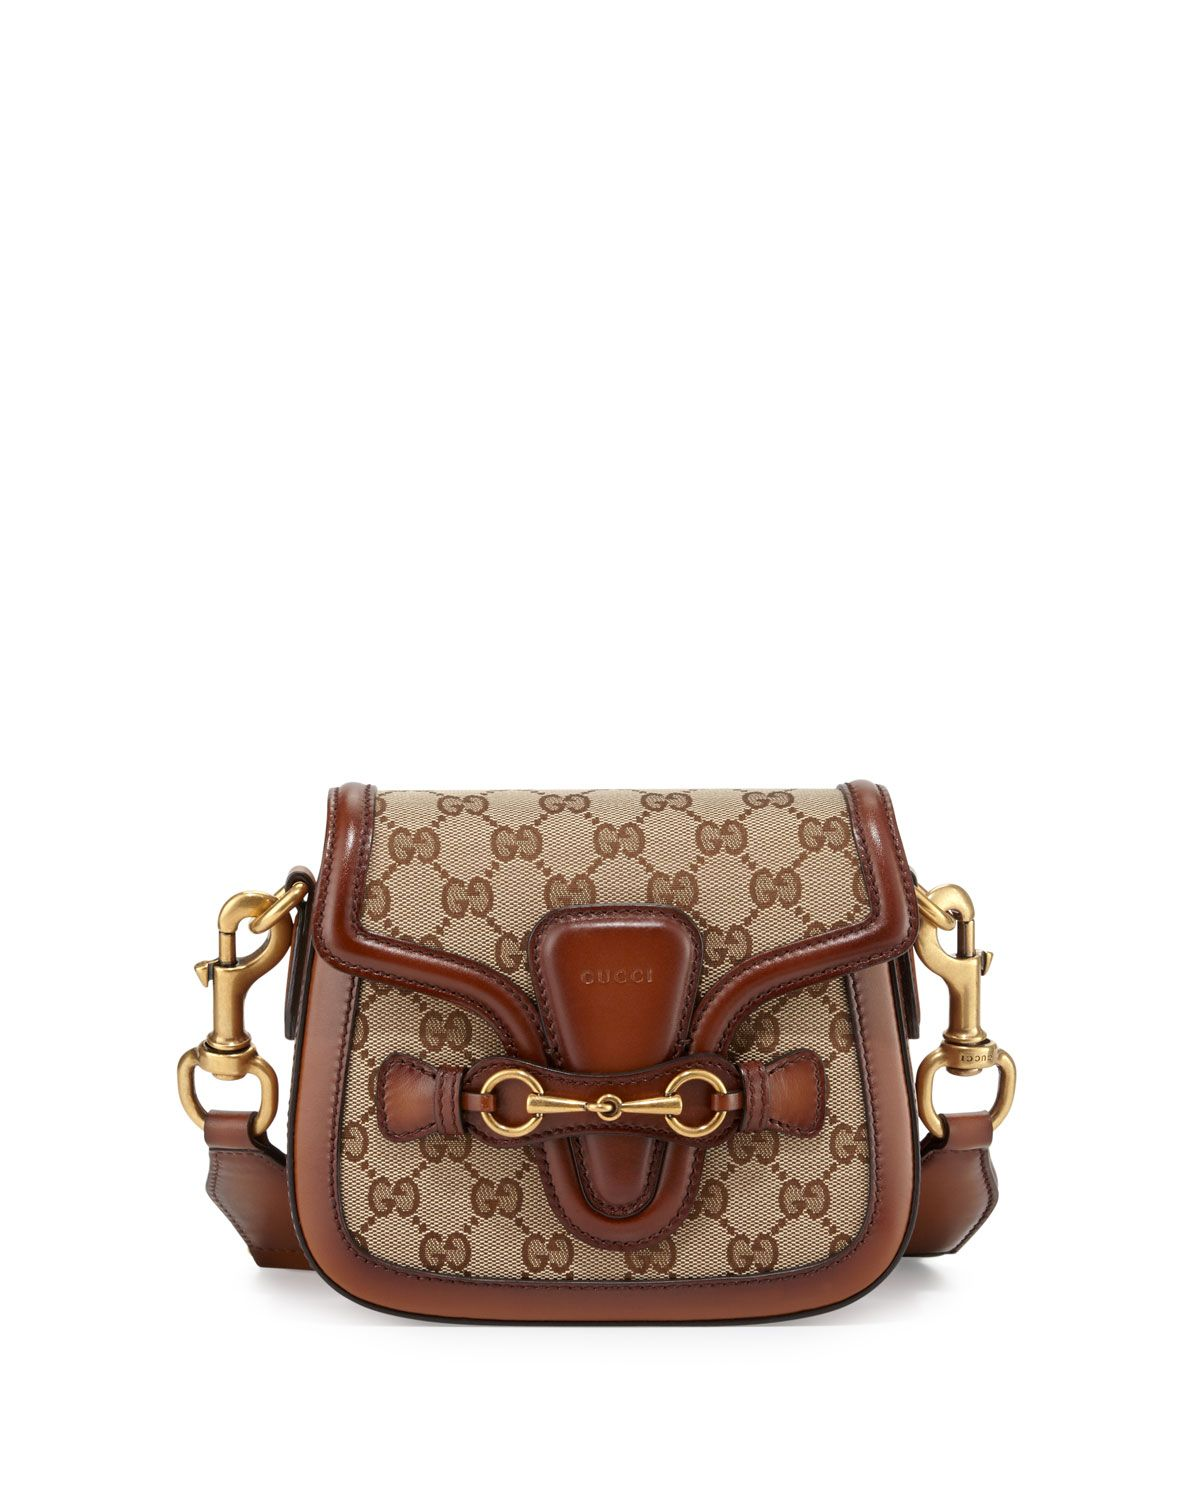 dadfabf0ff666a Gucci Lady Web Small GG Canvas Shoulder Bag, Brown, Women's, Brown/Red/Green